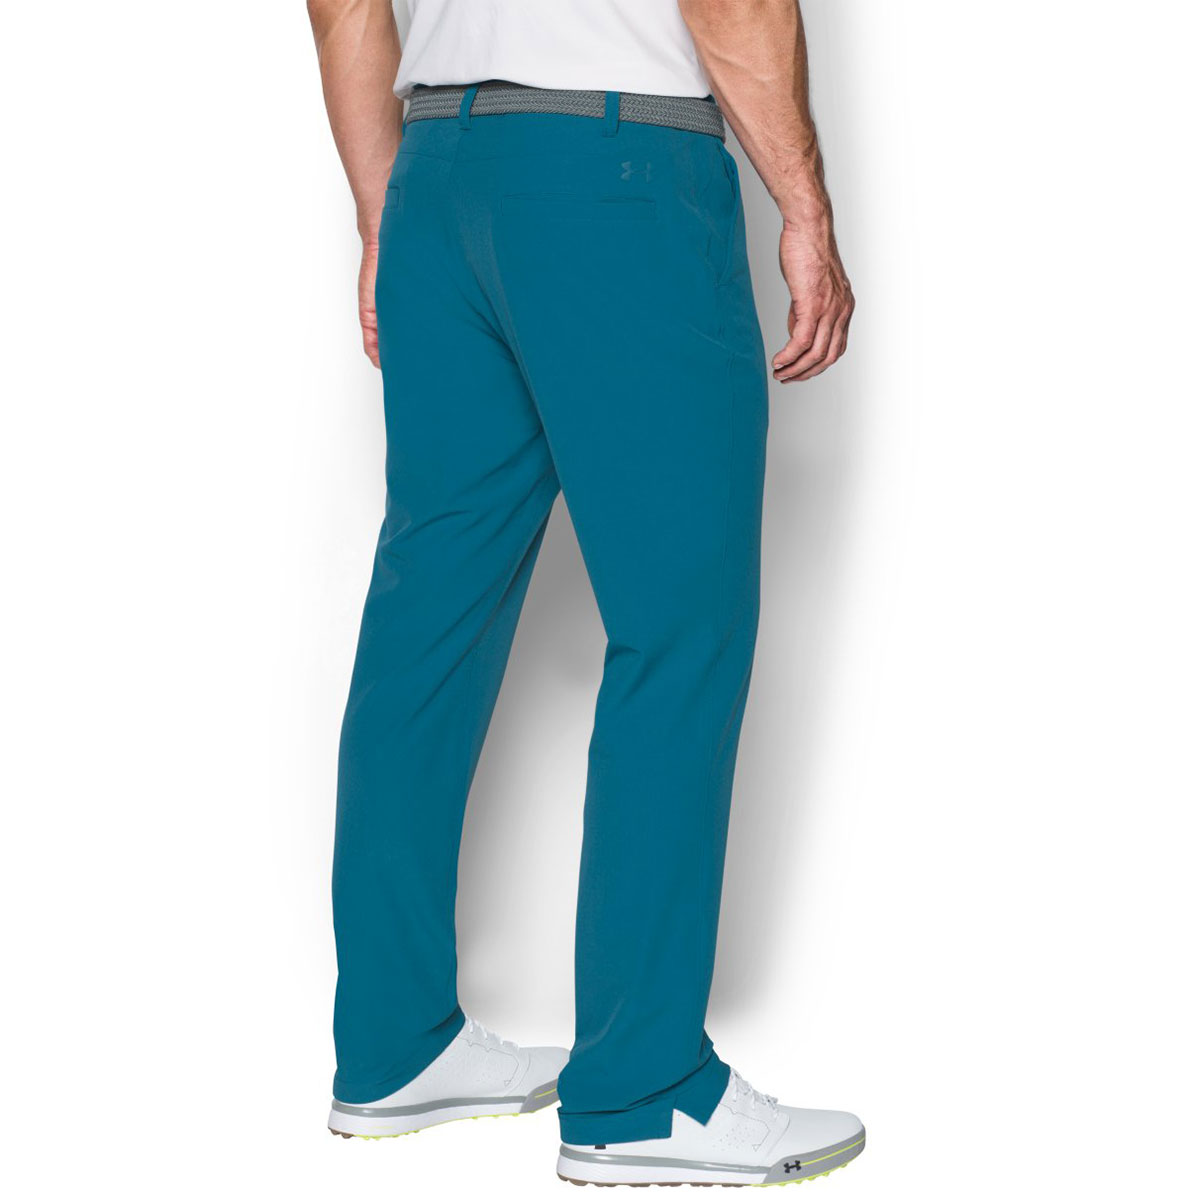 Under-Armour-Mens-Match-Play-ColdGear-Infrared-Taper-Golf-Trousers-52-OFF-RRP thumbnail 7